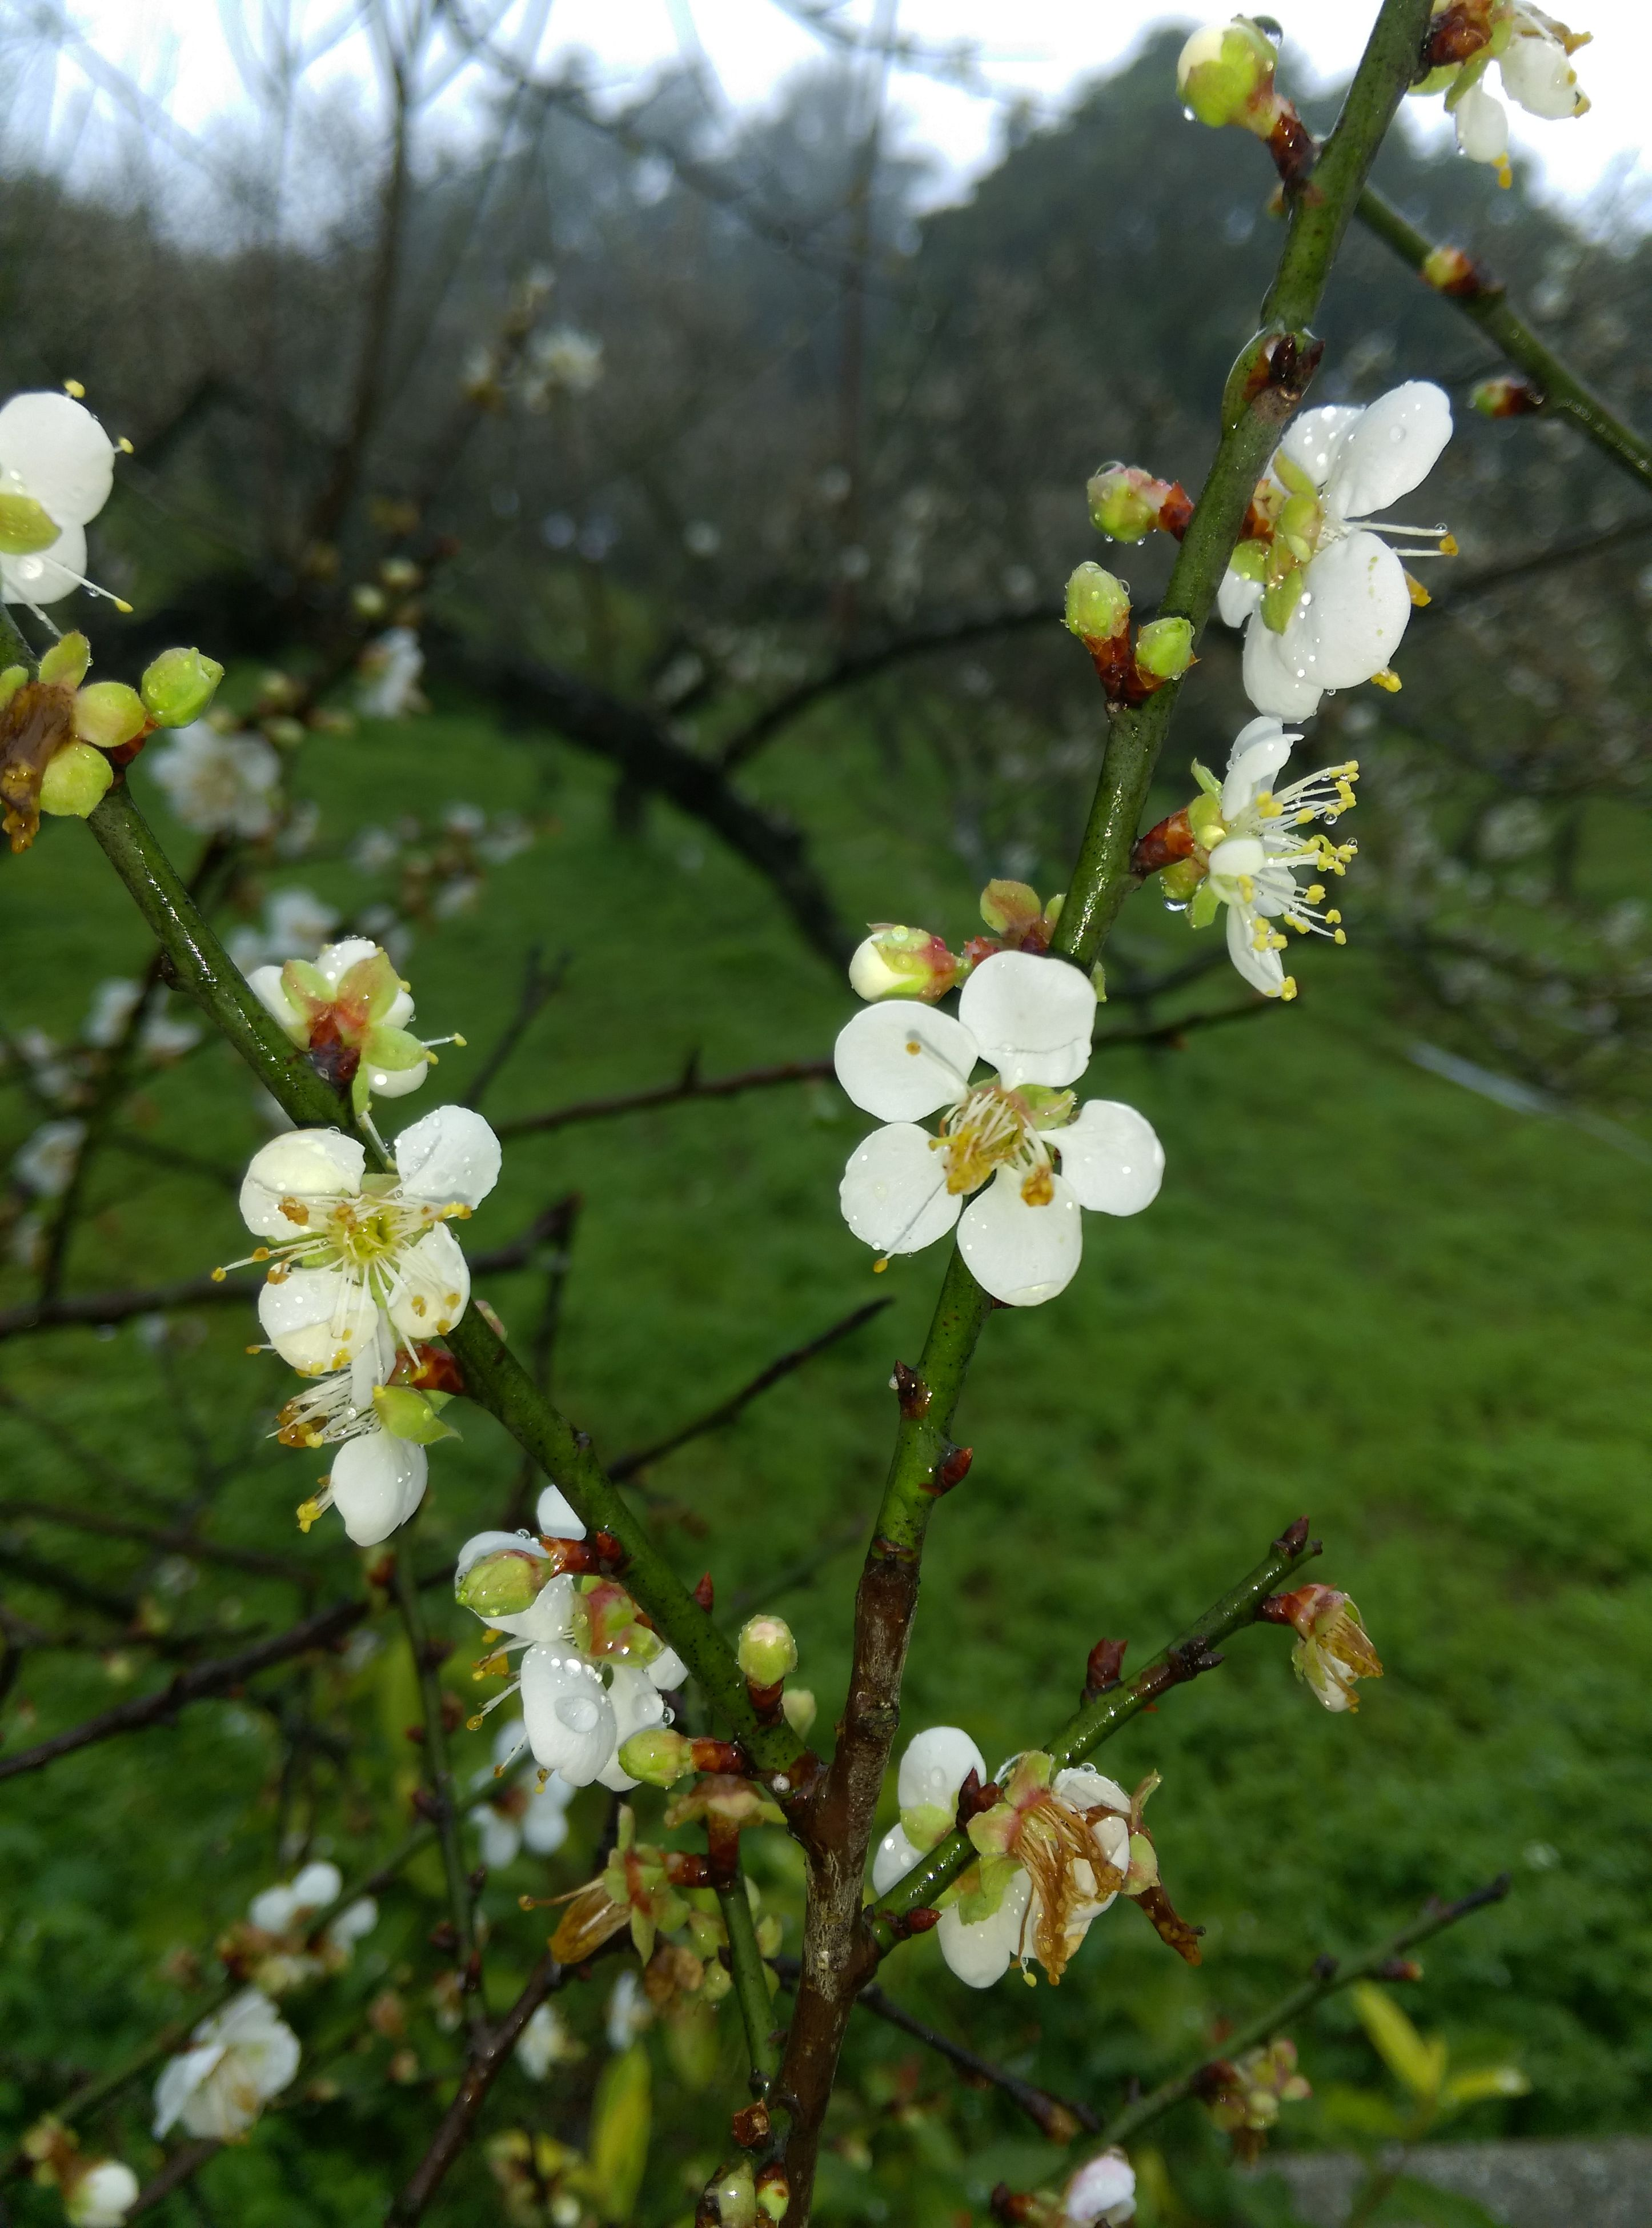 flower, freshness, branch, growth, fragility, tree, white color, beauty in nature, petal, blossom, nature, focus on foreground, blooming, twig, close-up, in bloom, flower head, apple tree, cherry blossom, springtime